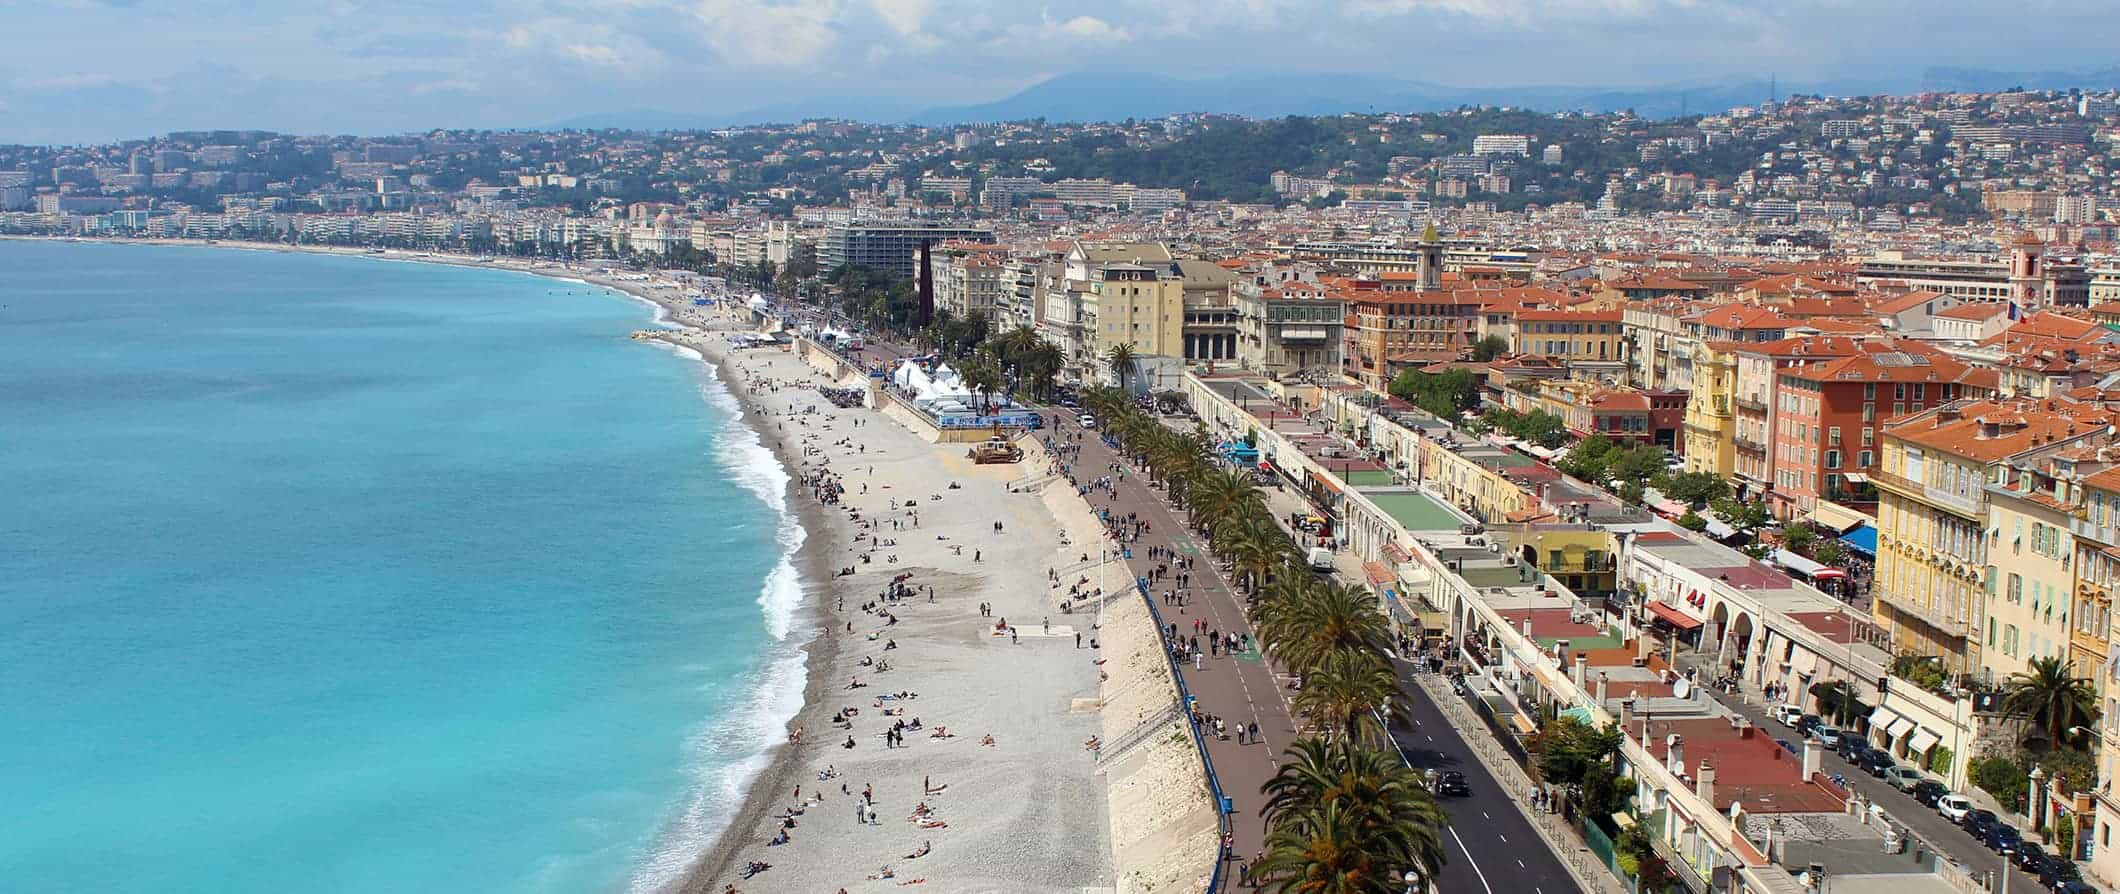 view over Nice beach and the promenade